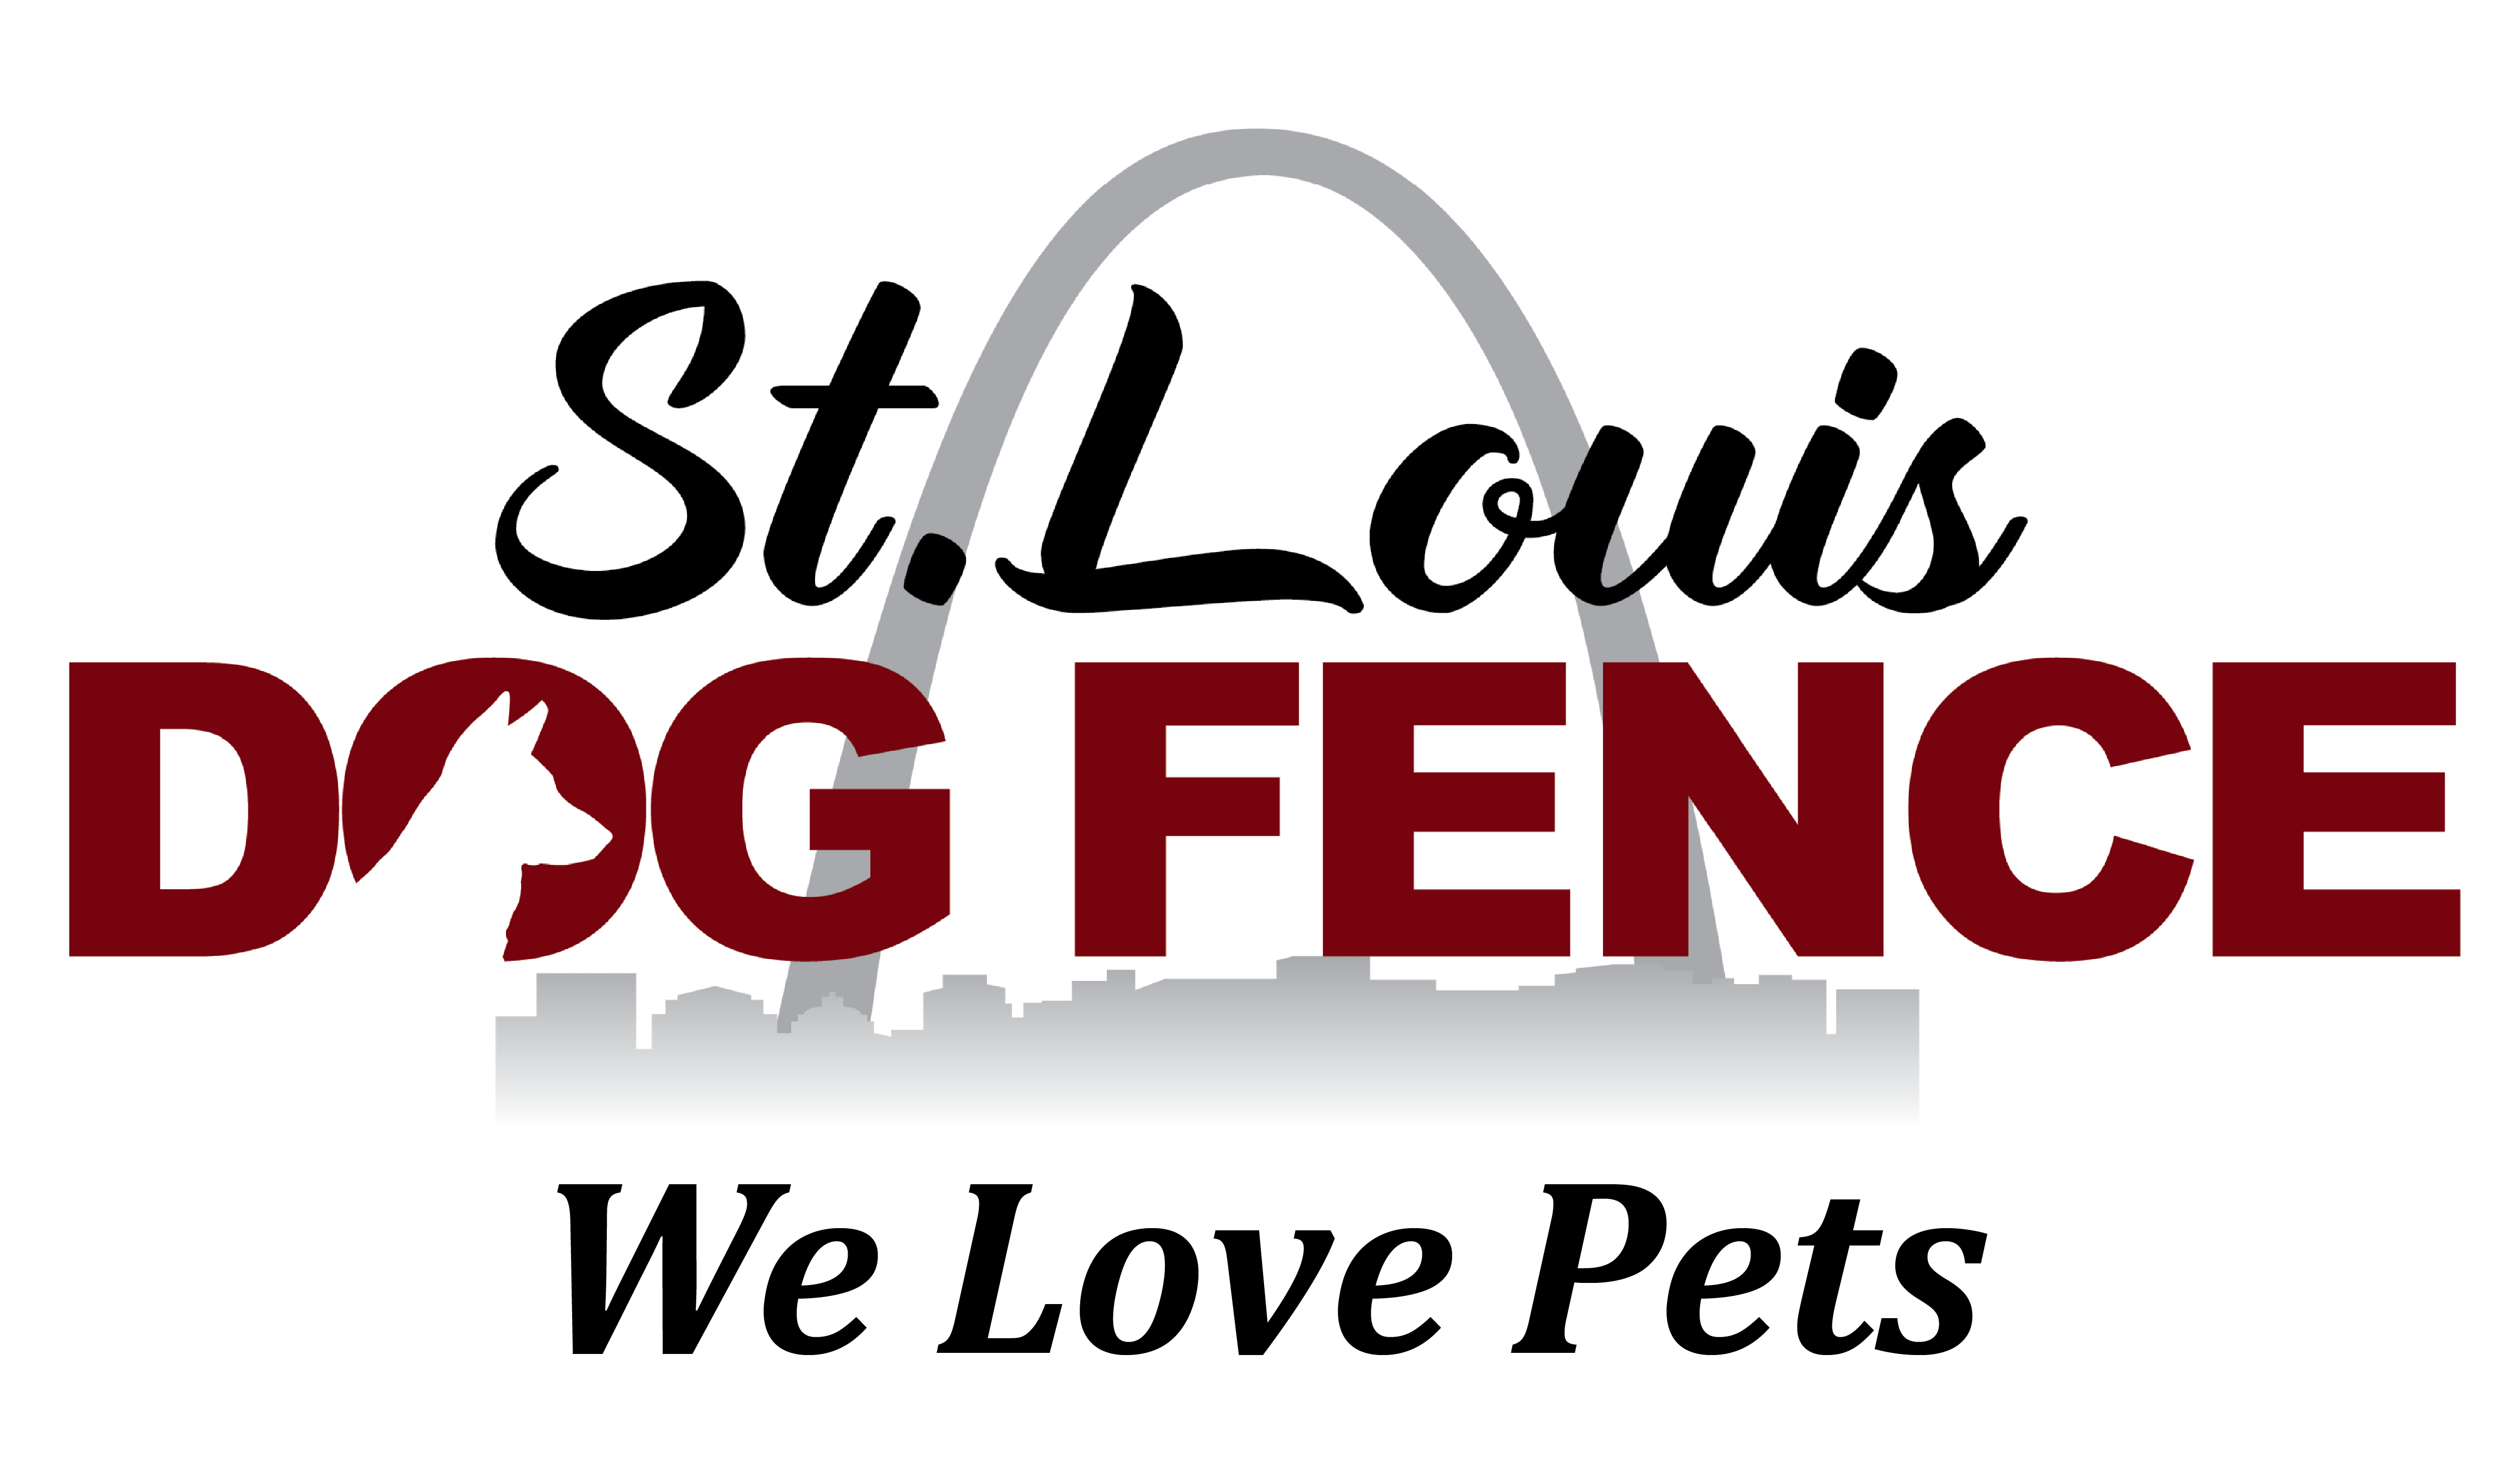 Our Pets Help Us In So Many Ways Most Pets These Days Are Getting A Lot More Time With Their Hoomans Welovespets Stlouisdogfence In 2020 Pet People Love Pet Pets